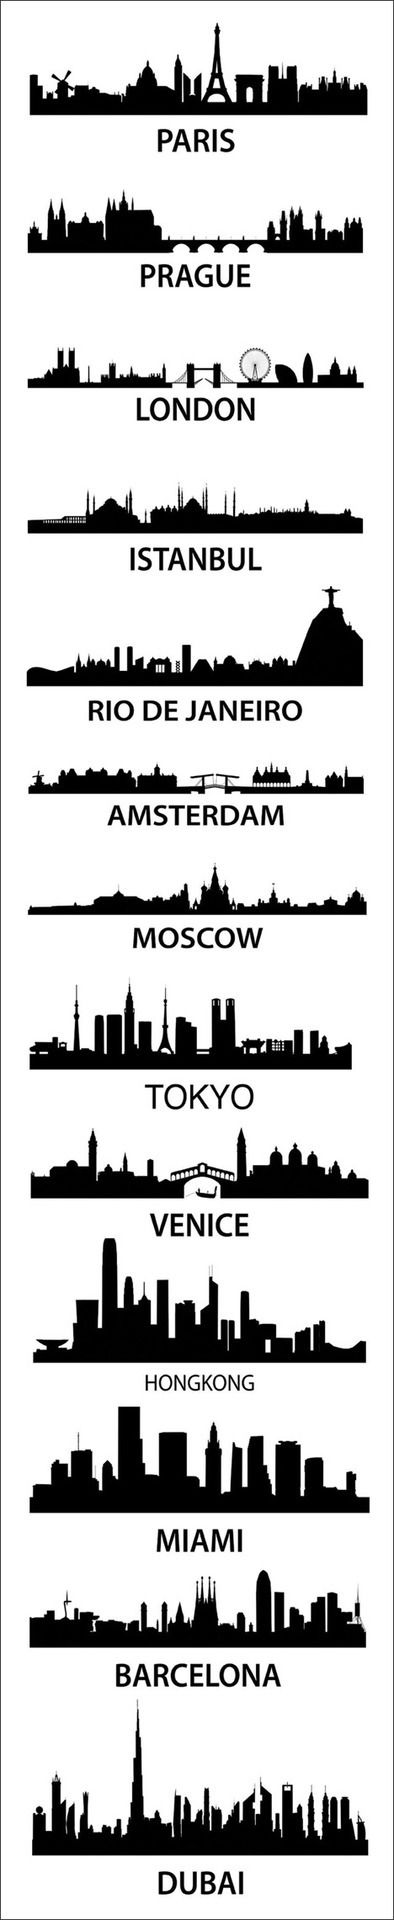 Cool graphic via Cognac and Coffee. I've got Amsterdam, Hong Kong, London and Paris covered...now to hit the rest!   : )